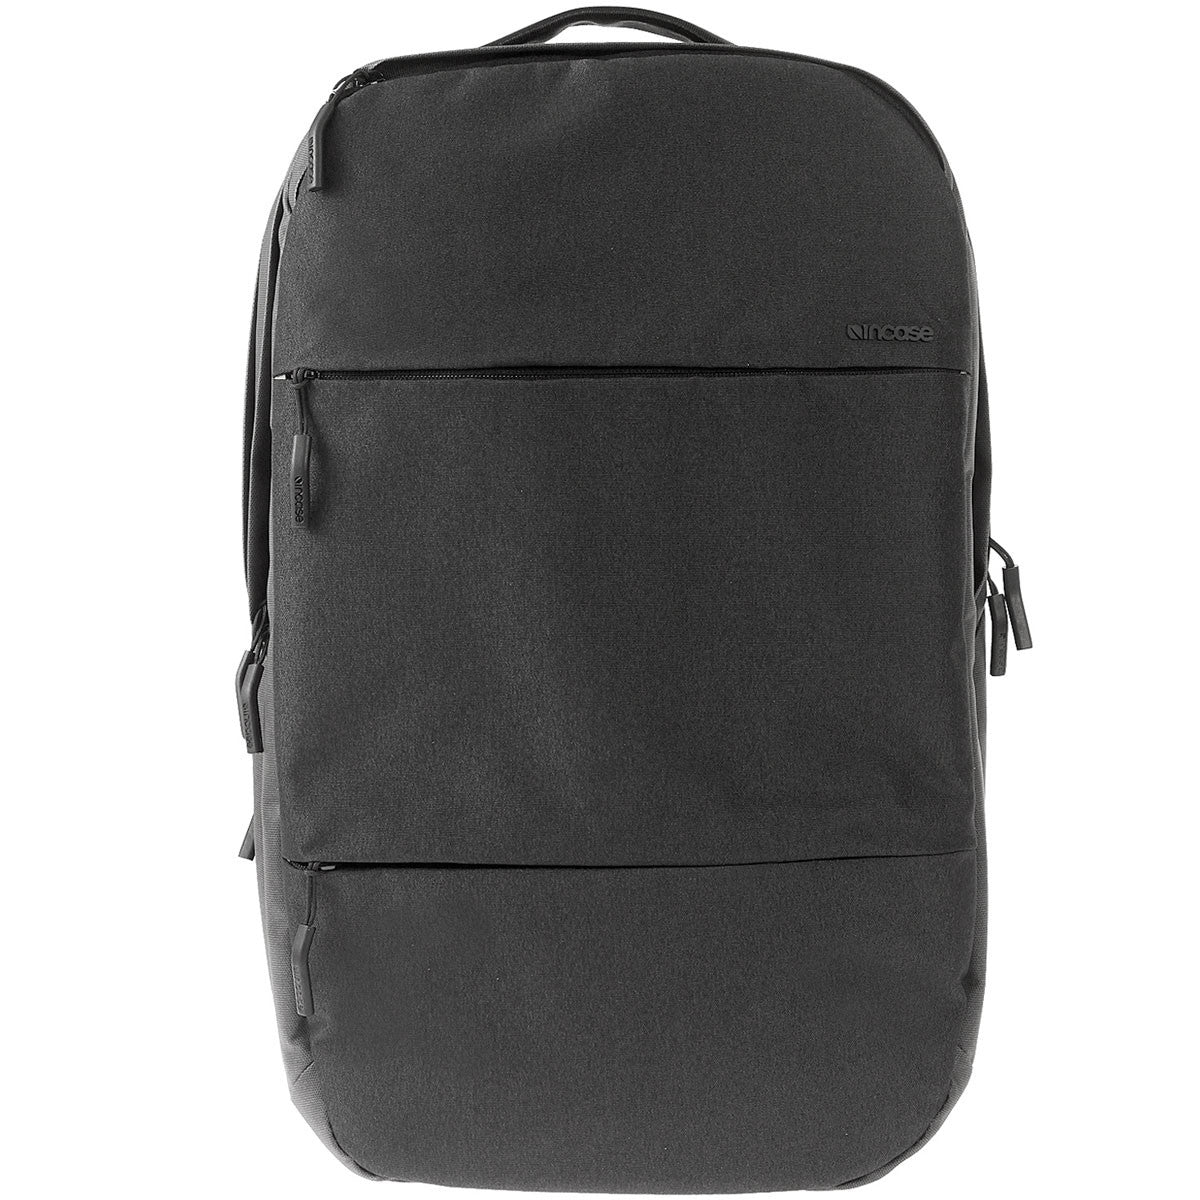 Incase: City Collection Backpack - Black (CL55450) front